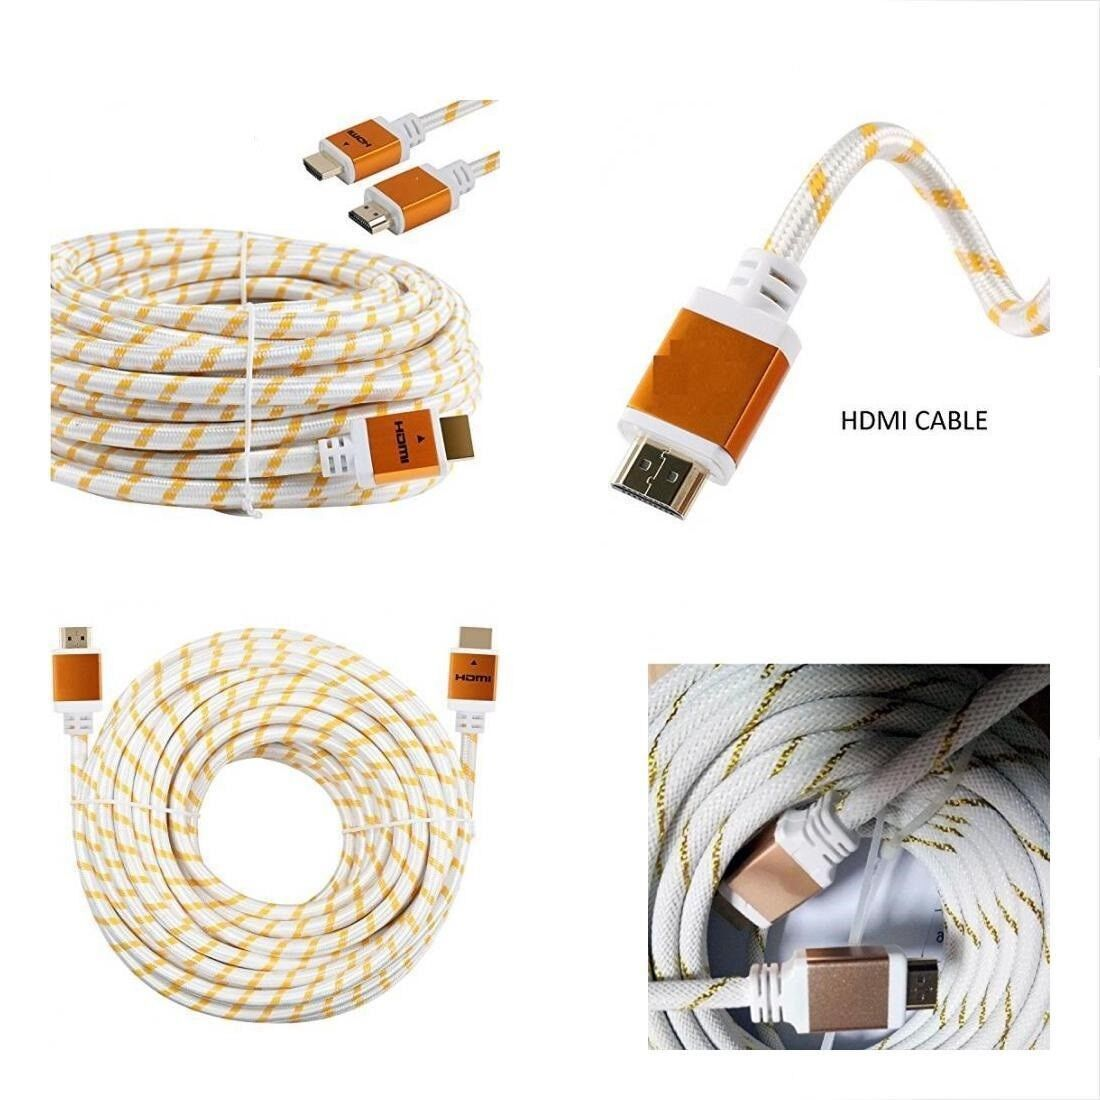 Premium HDMI Cable Cord 3ft 6ft 10ft 15ft 25ft 30ft 50ft 75f